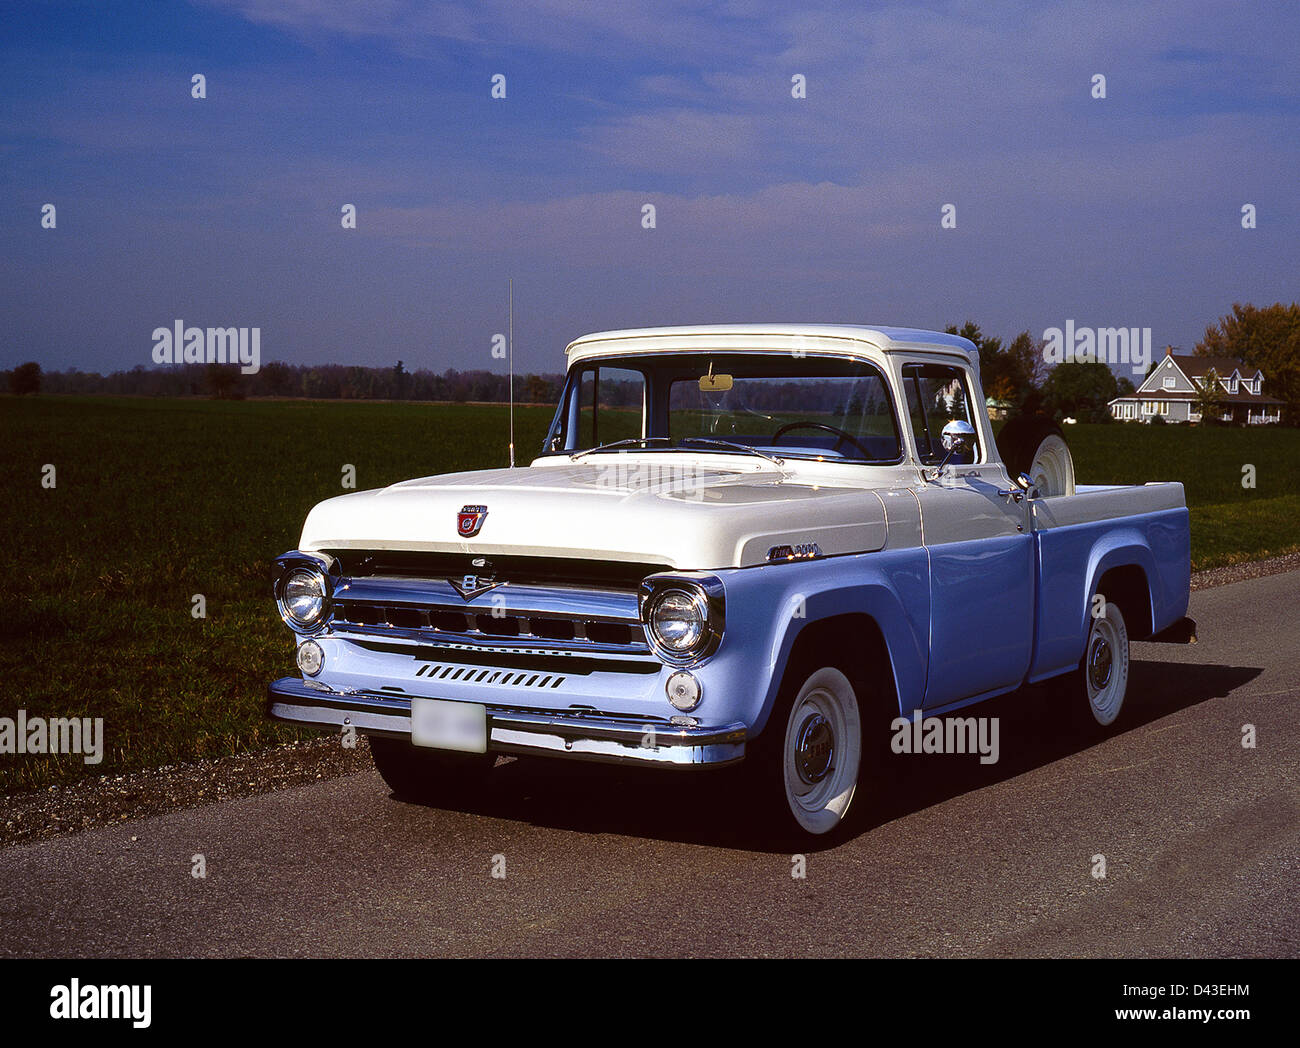 Ford F 100 Pickup Truck Stock Photos & Ford F 100 Pickup